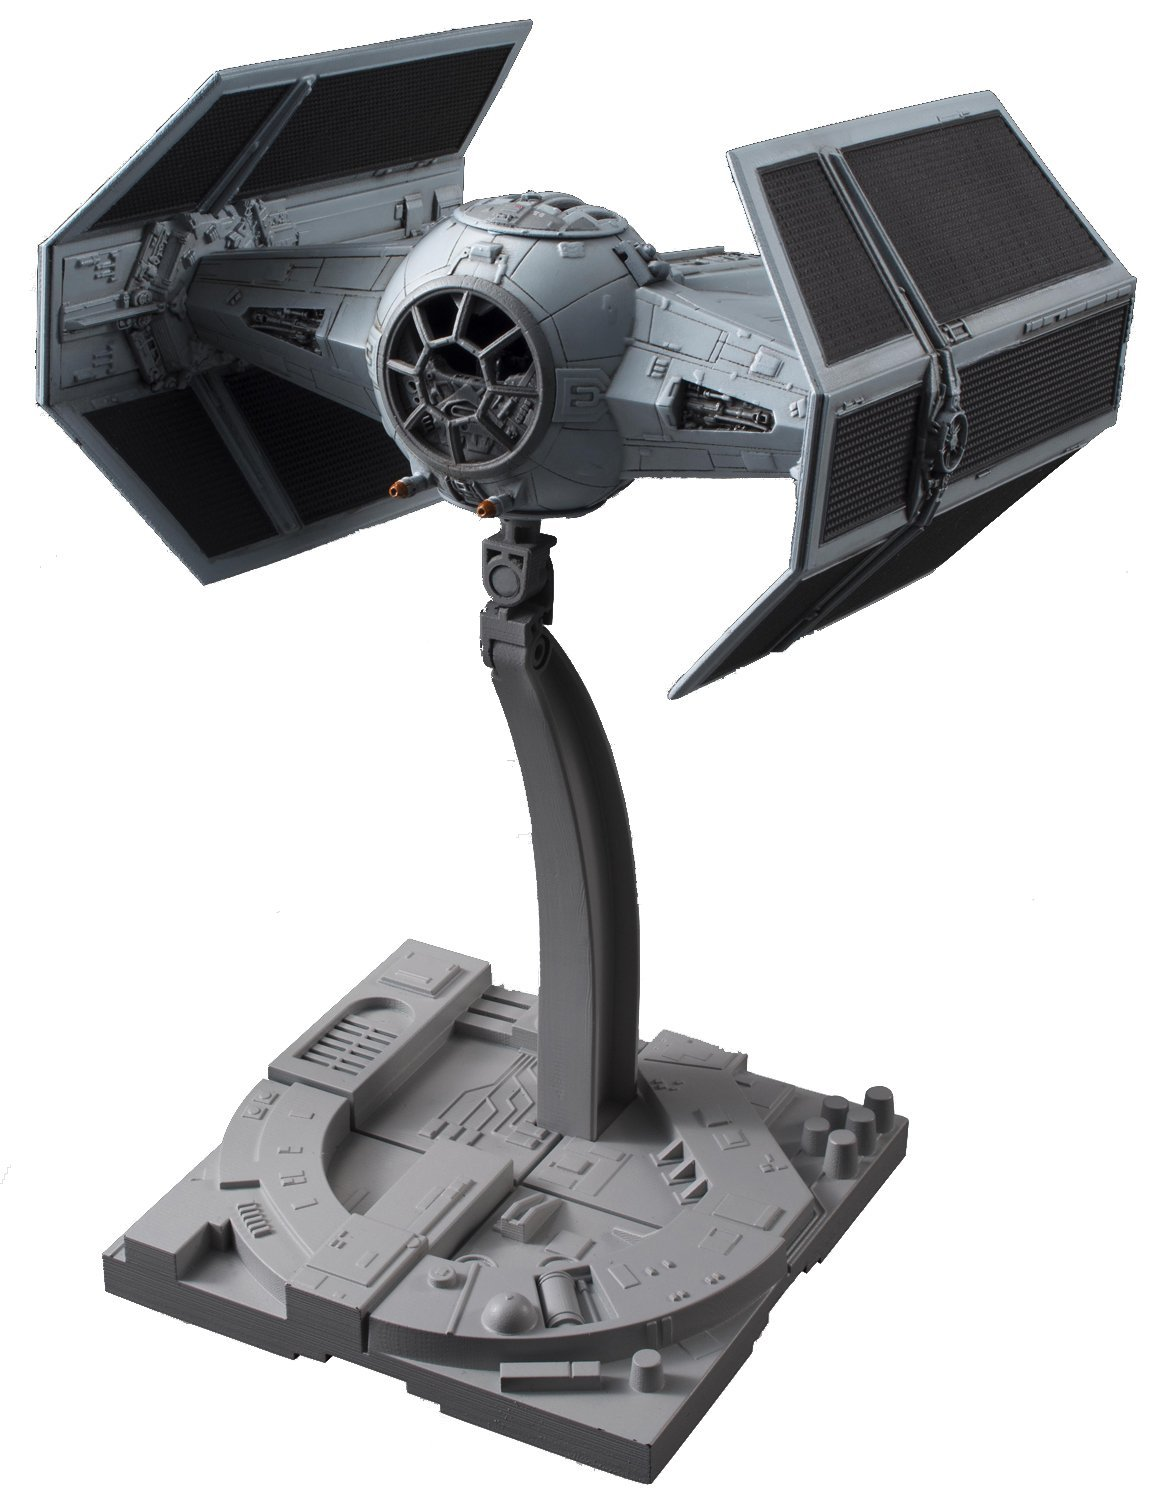 Star Wars Darth Vader TIE Fighter